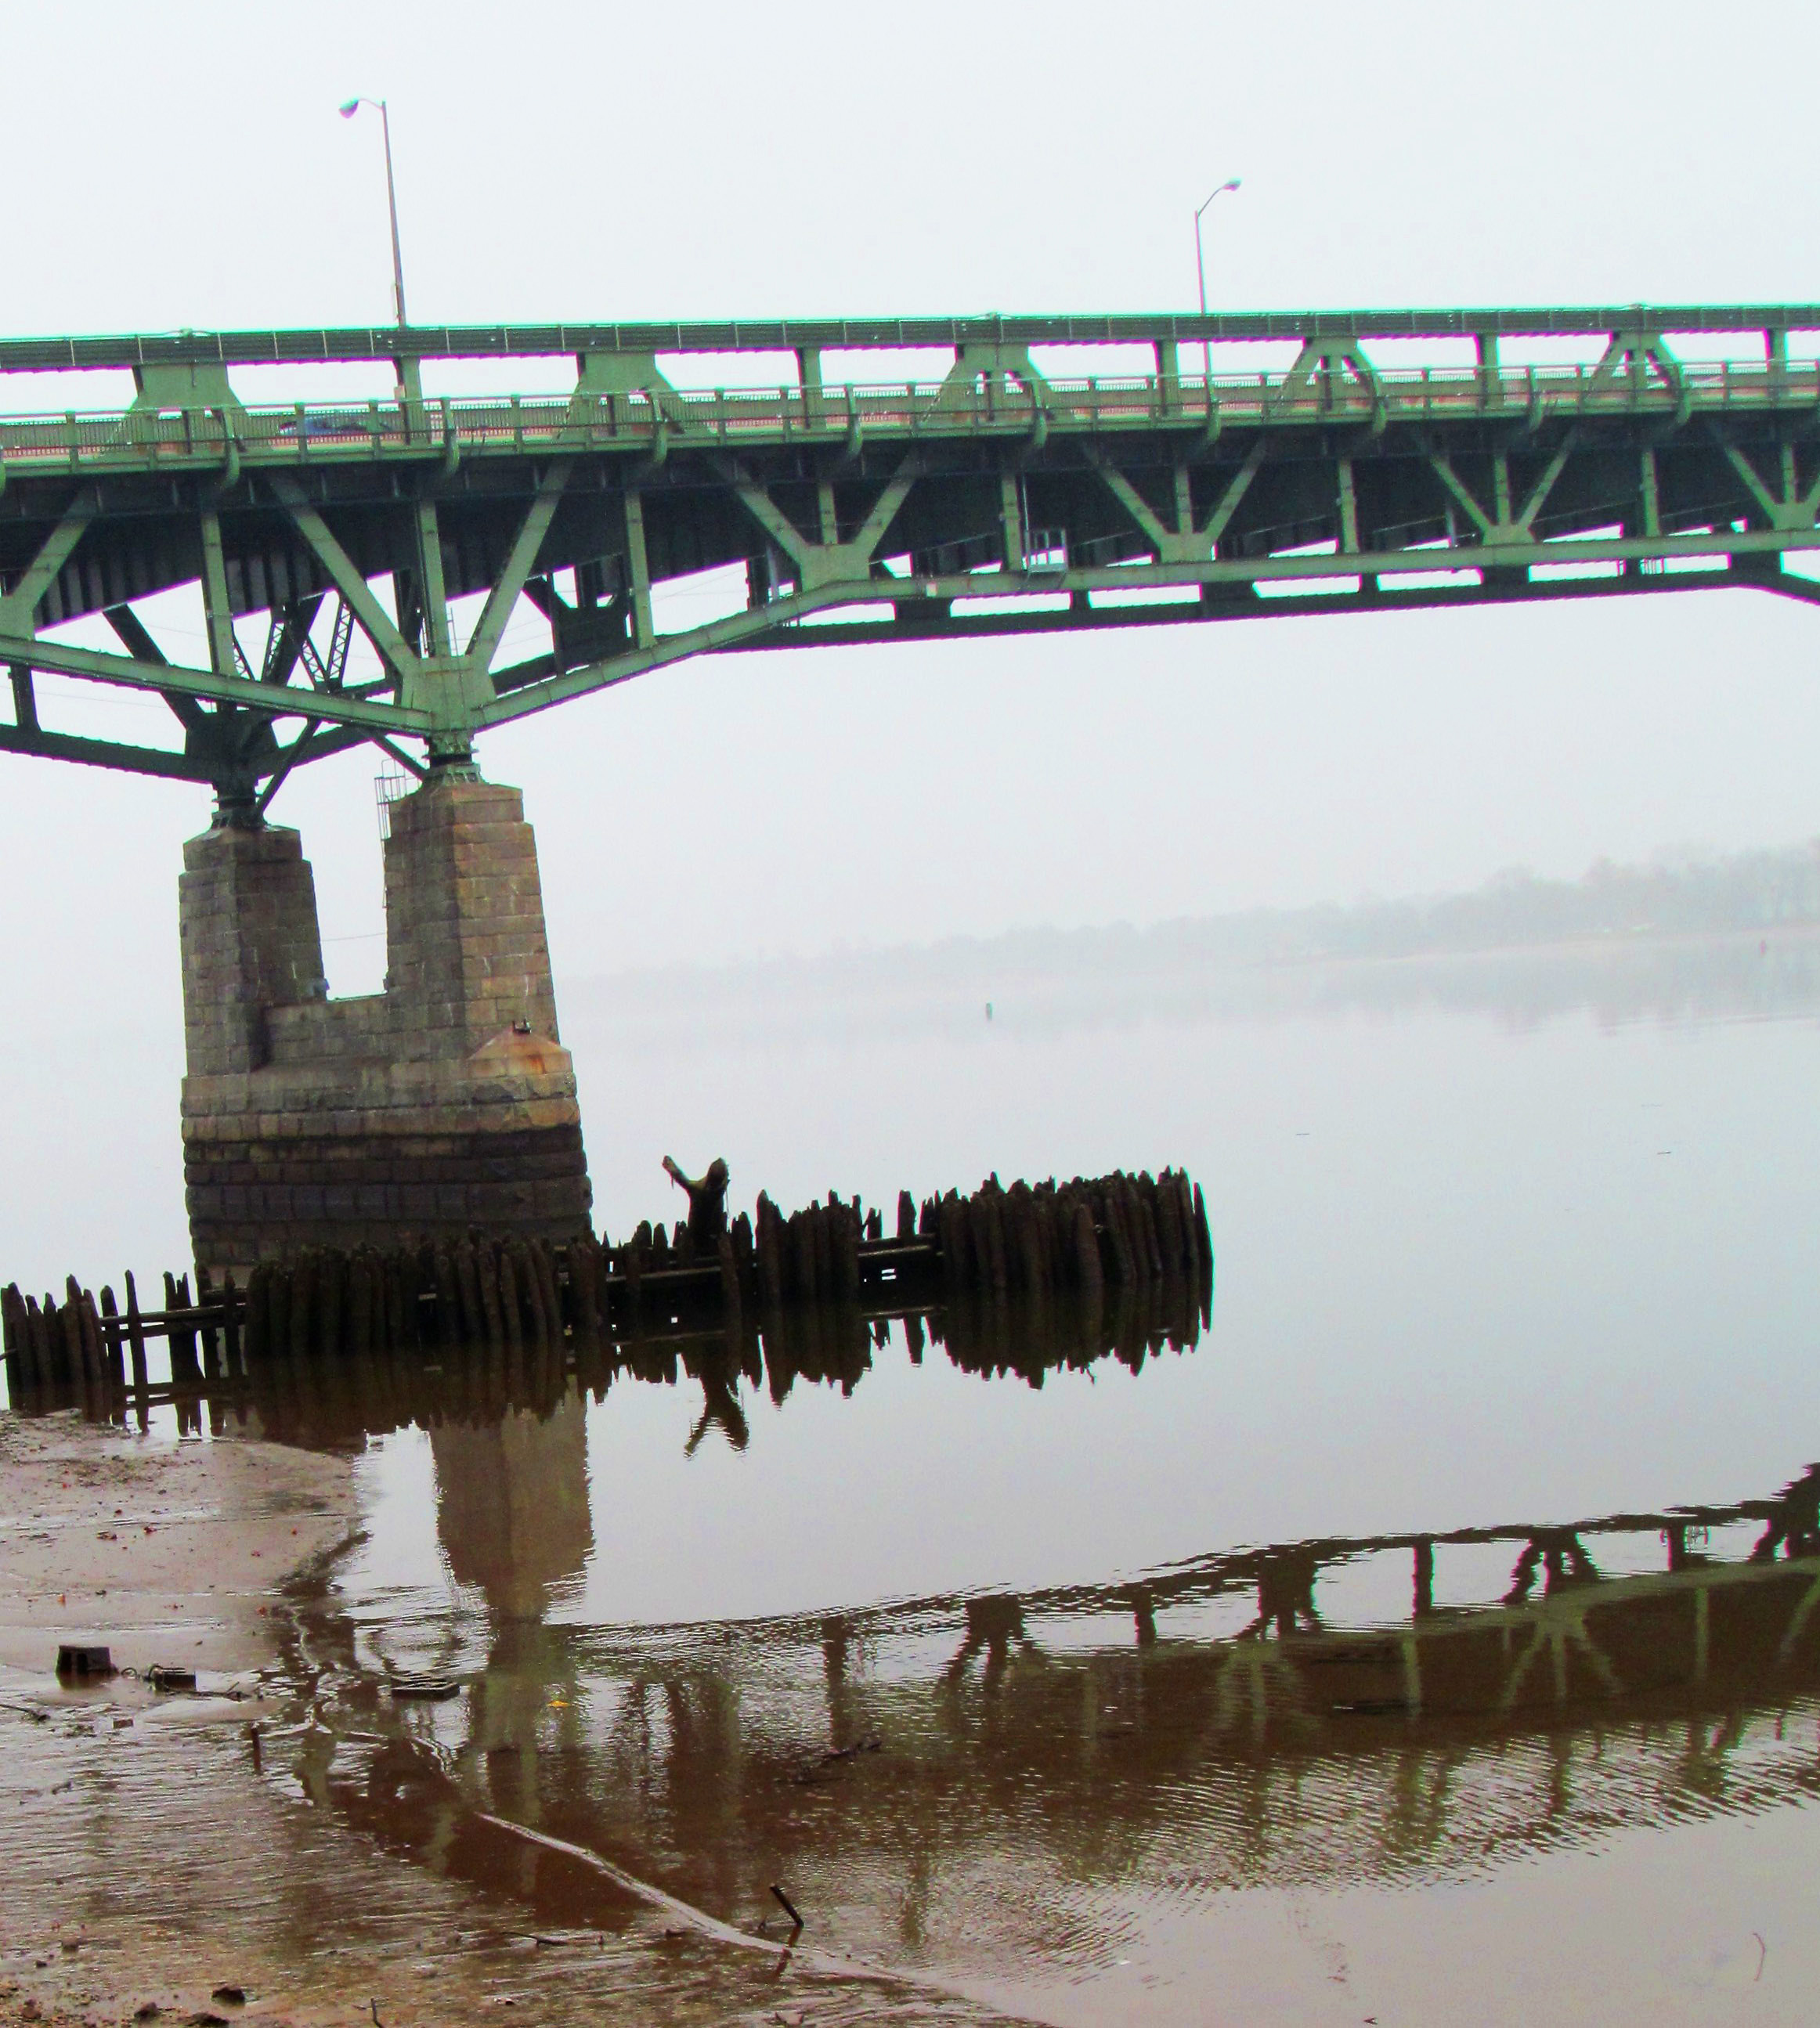 Tacony Bridge & River Jetty Water Reflection